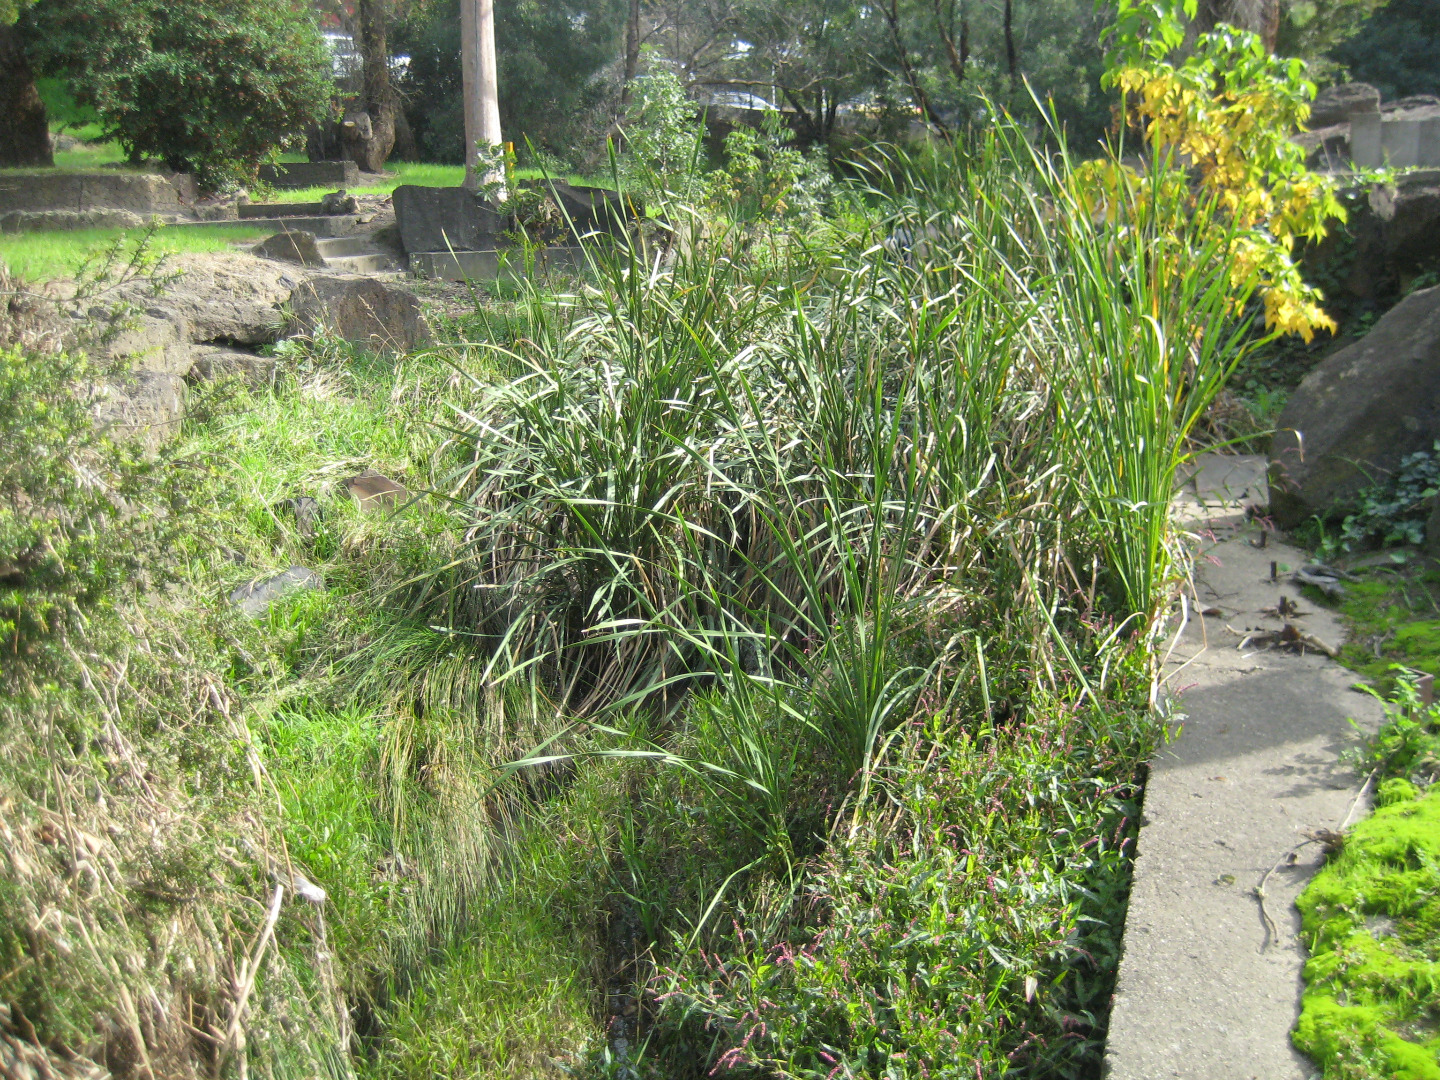 showing the vegetation obstructing flow at YDI838